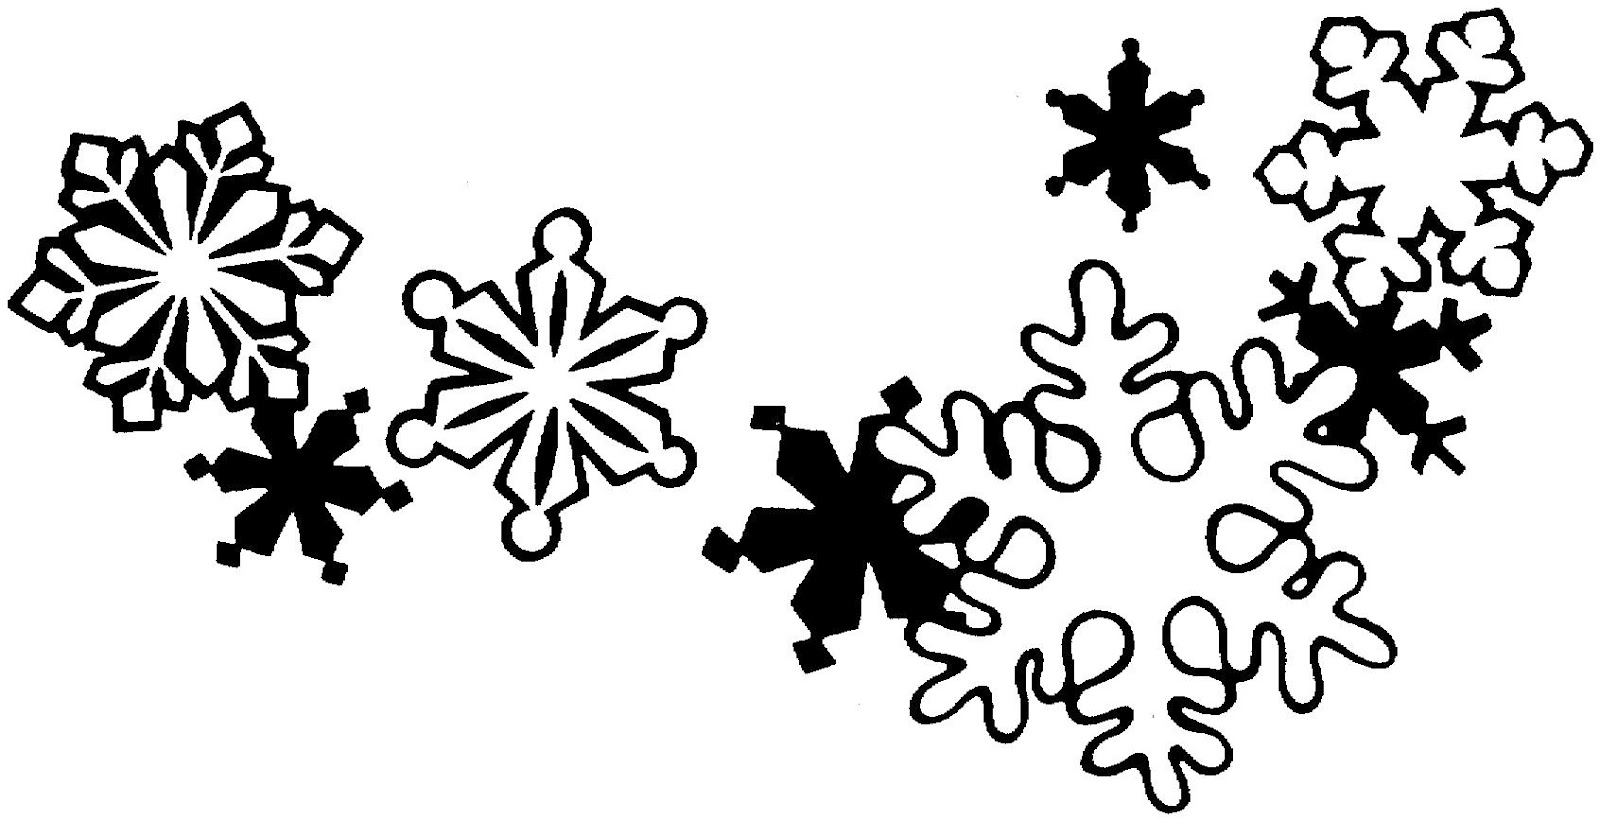 Snowflakes clipart. Snowflake black and white